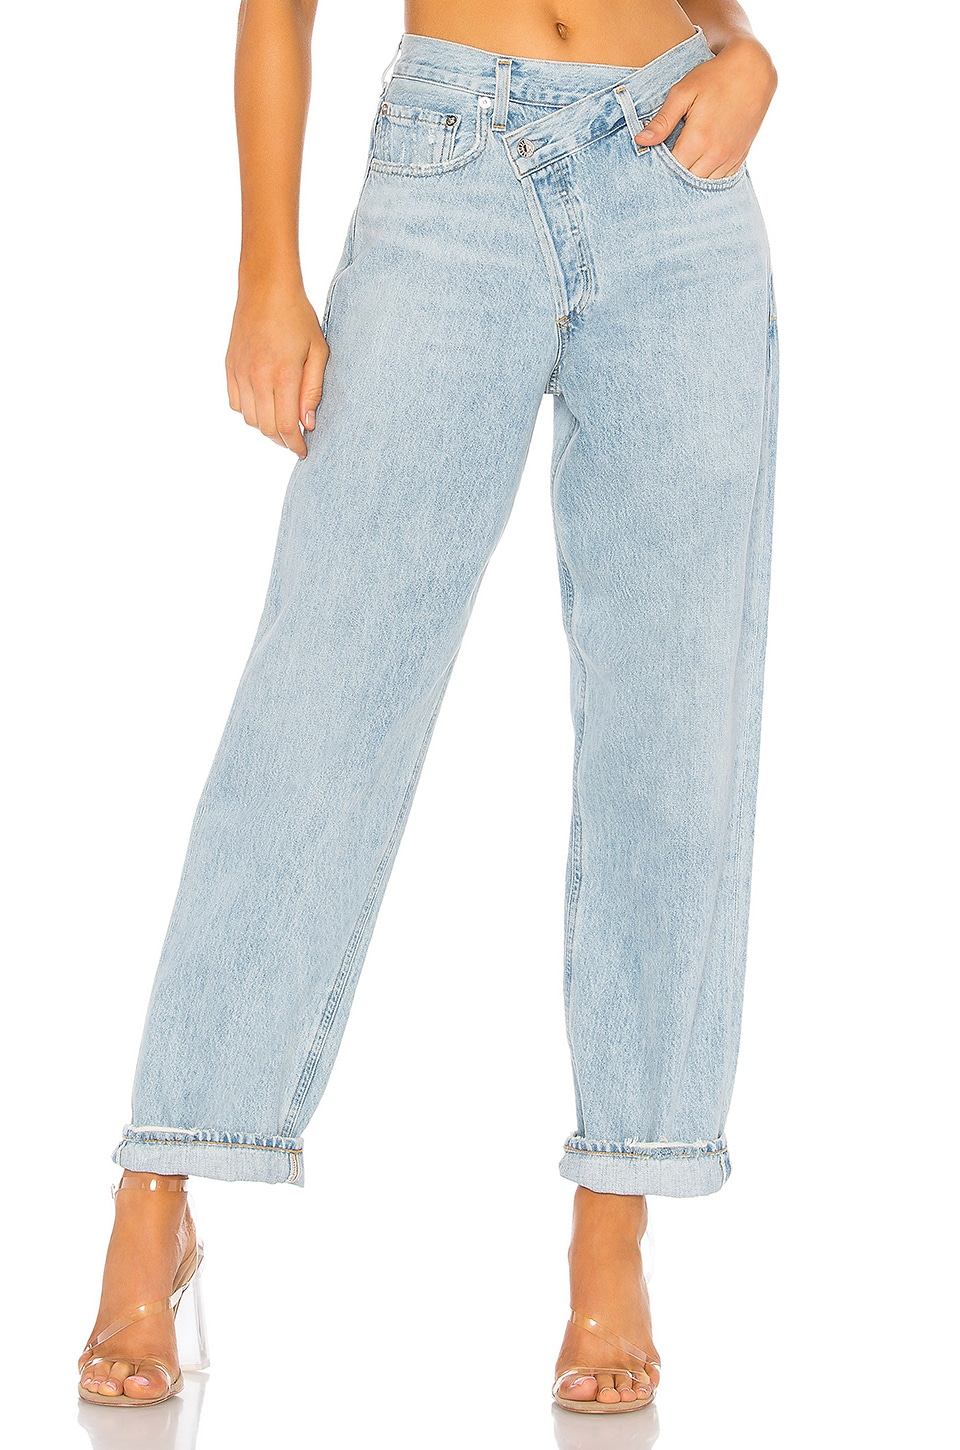 Criss Cross Upsized Jean             AGOLDE                                                                                                       CA$ 254.00 9